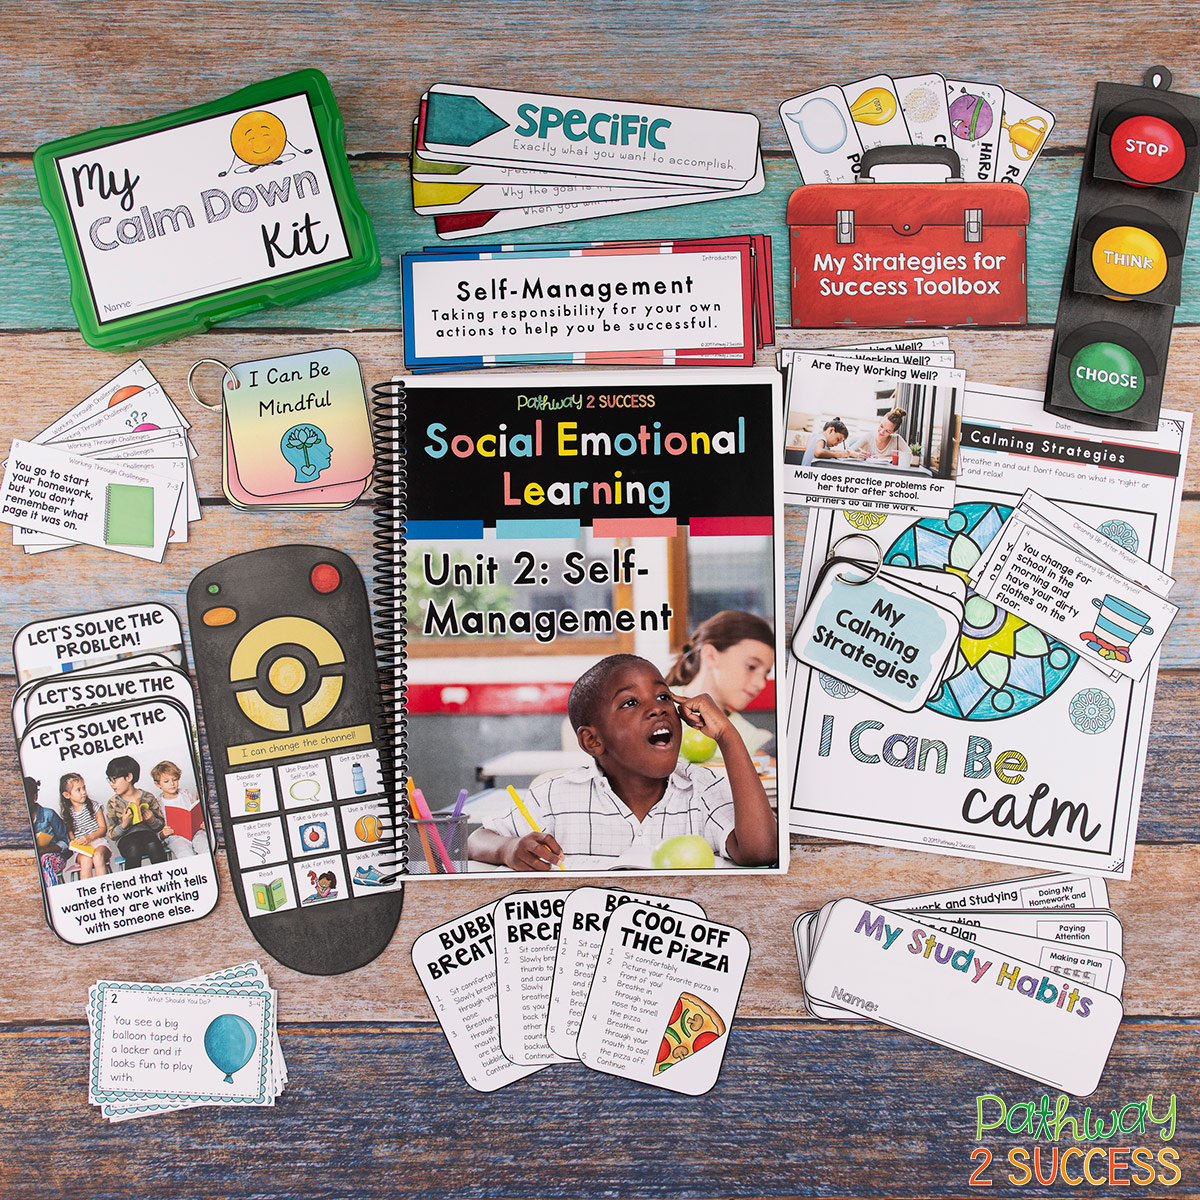 Social emotional learning skills are critical for success! Use this social emotional learning complete curriculum to help elementary learners acquire skills like empathy, confidence, conflict resolution, decision-making, and more. #pathway2success